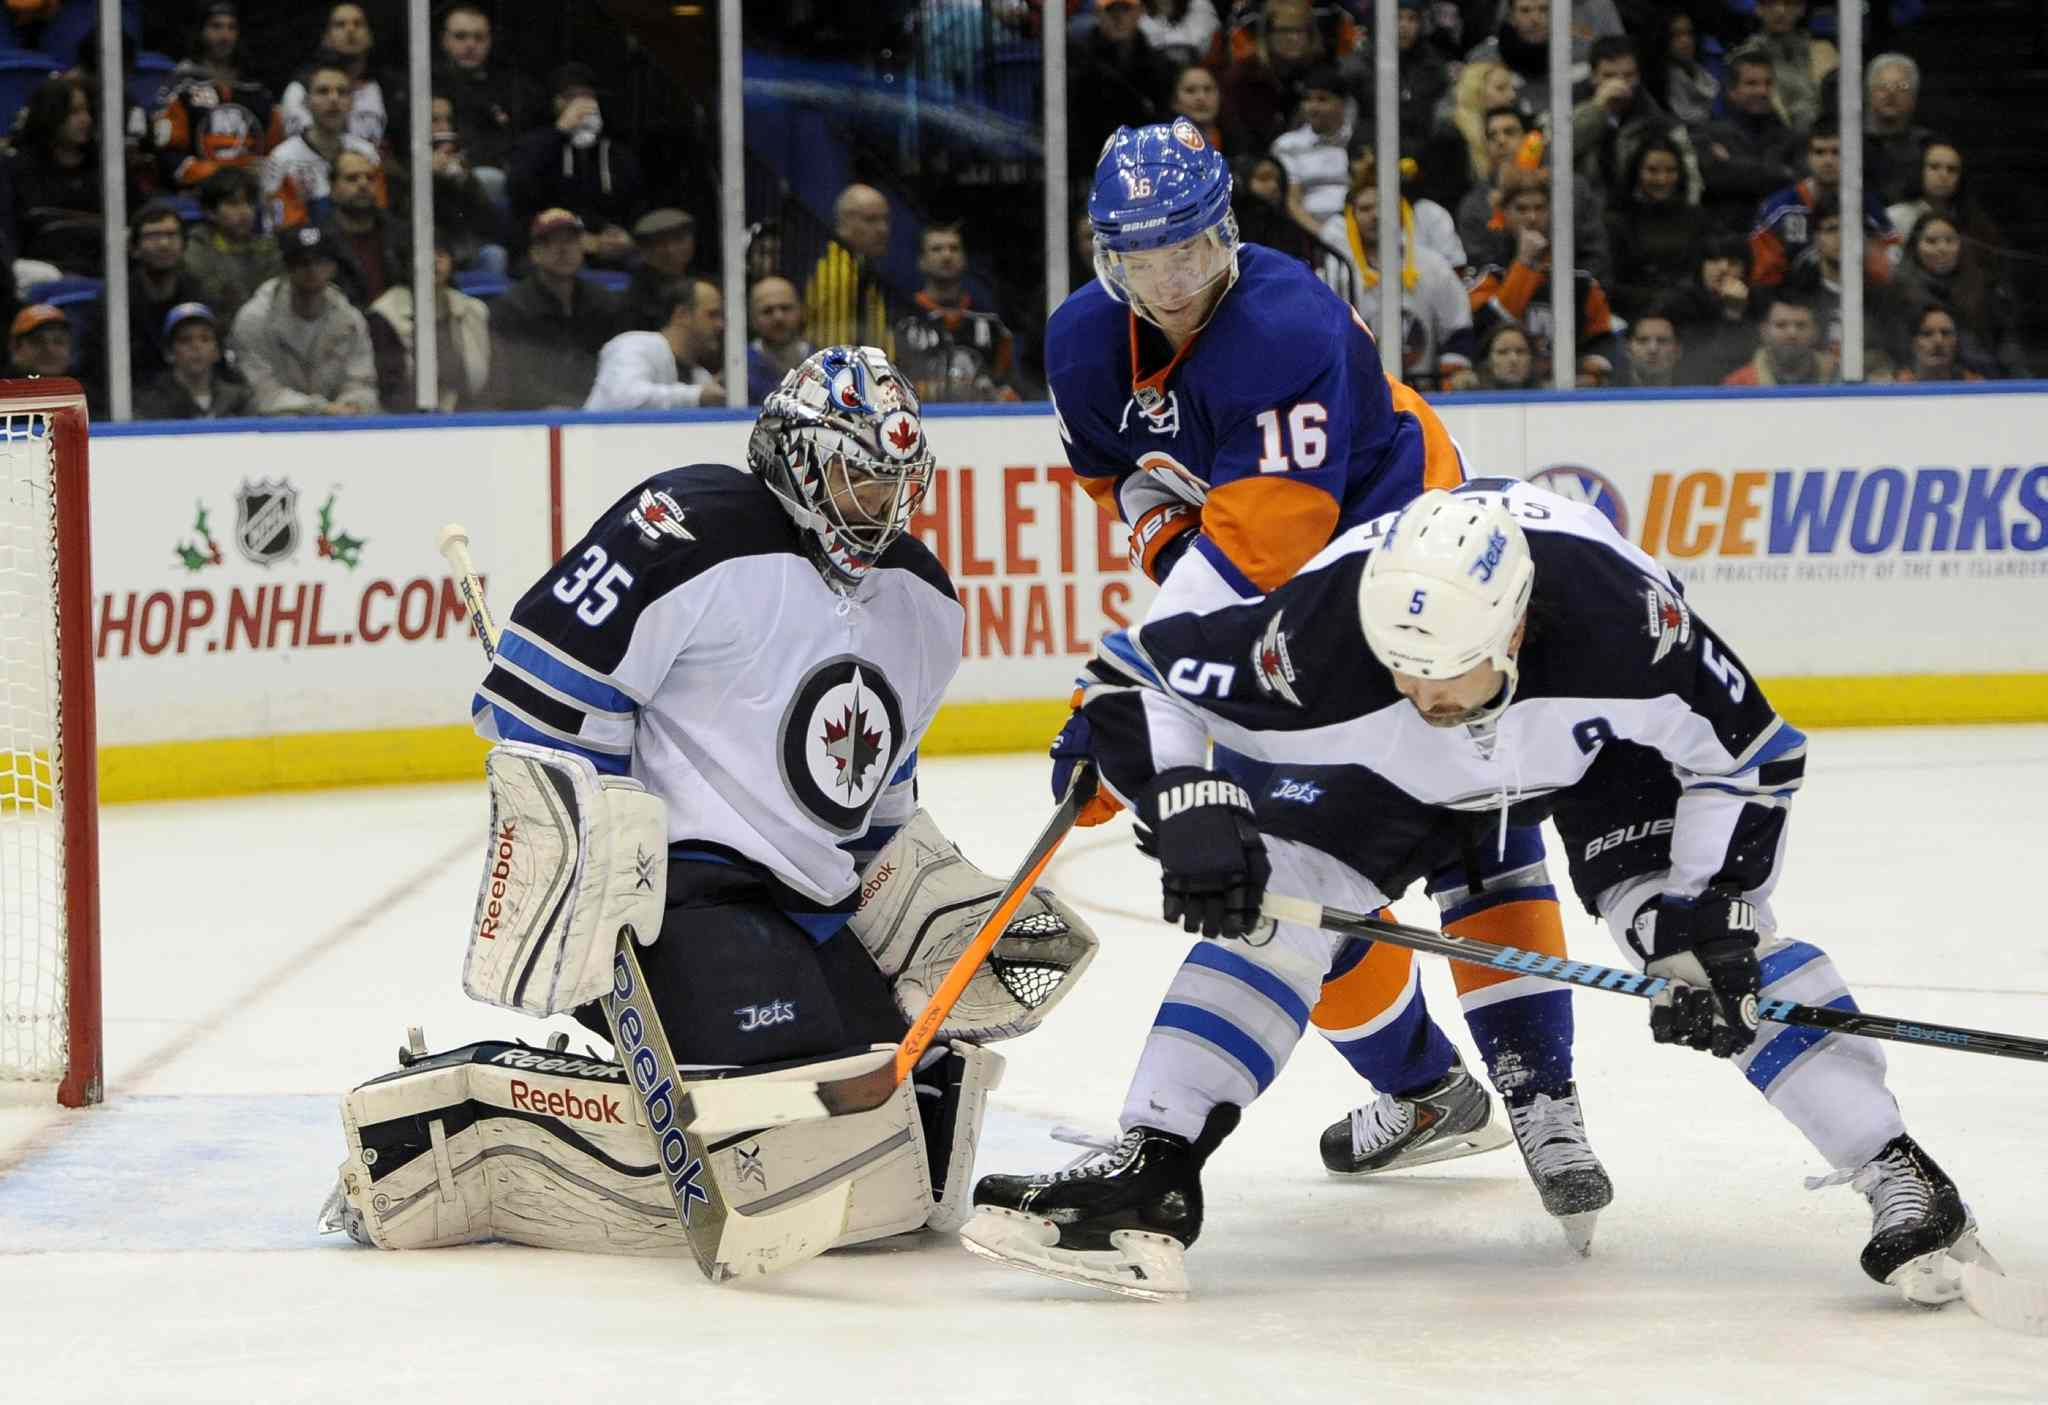 New York Islanders' Peter Regin (centre) and Winnipeg Jets defenceman Mark Stuart (right) scuffle in front of the net as Jets goalie Al Montoya defends during the second period.